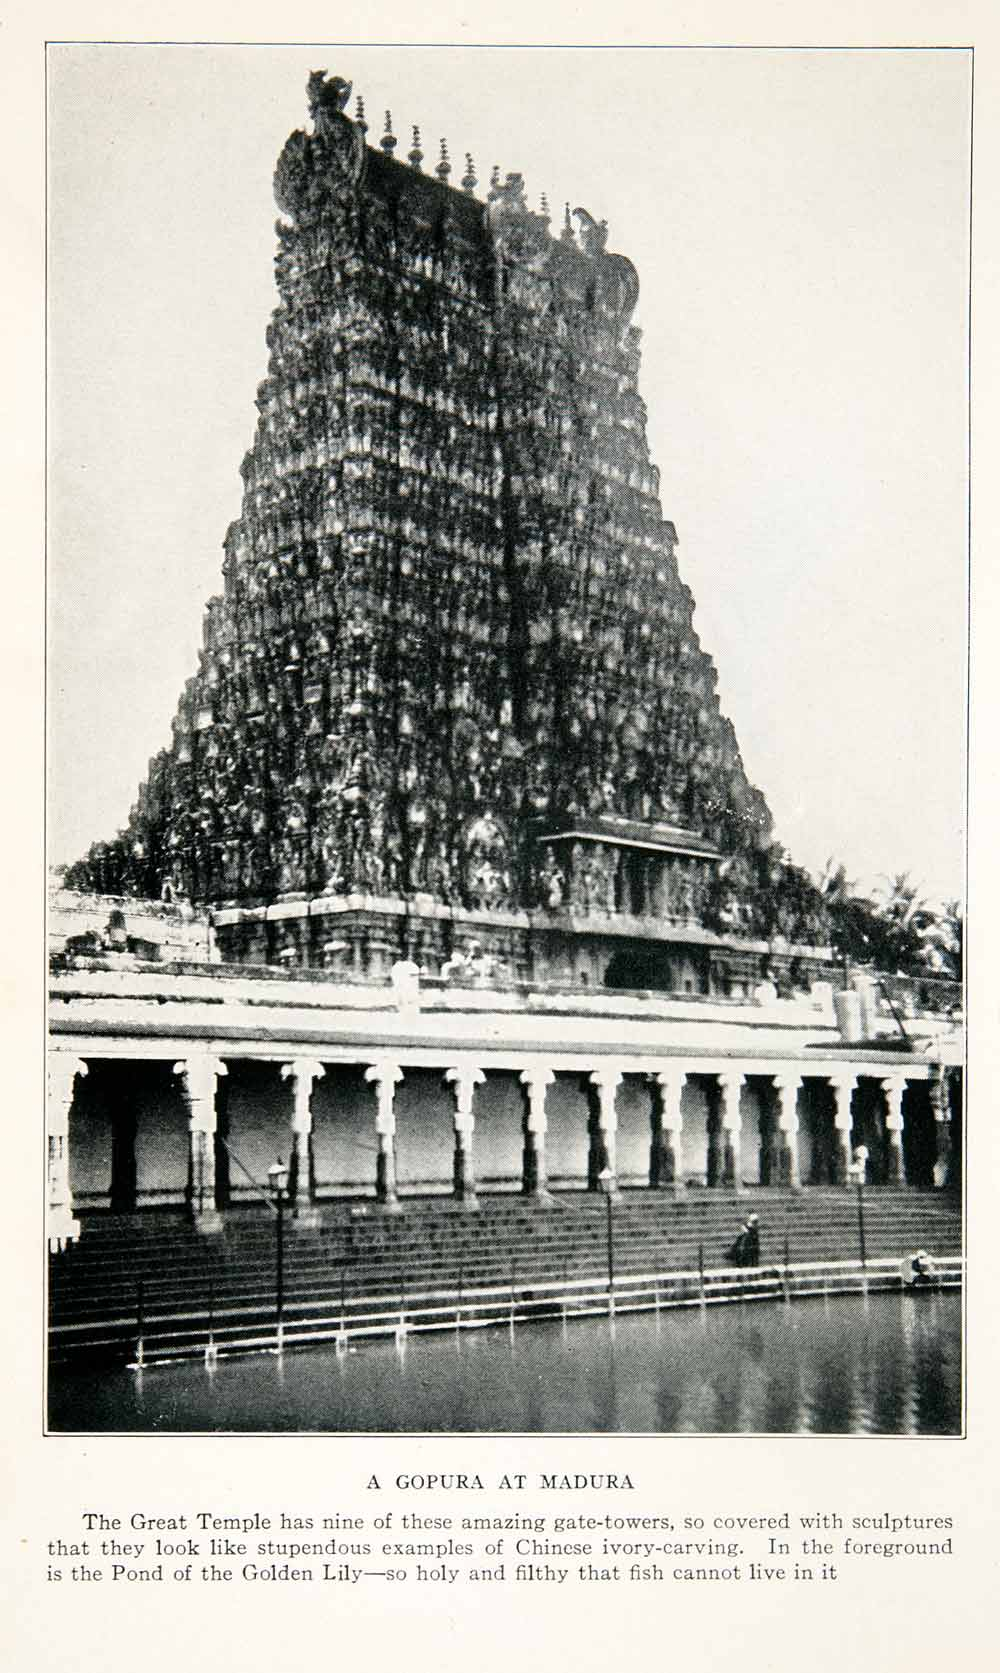 1929 Print Gopura Madura Nepal Great Temple Gate Tower Sculpture Golden XGFB7